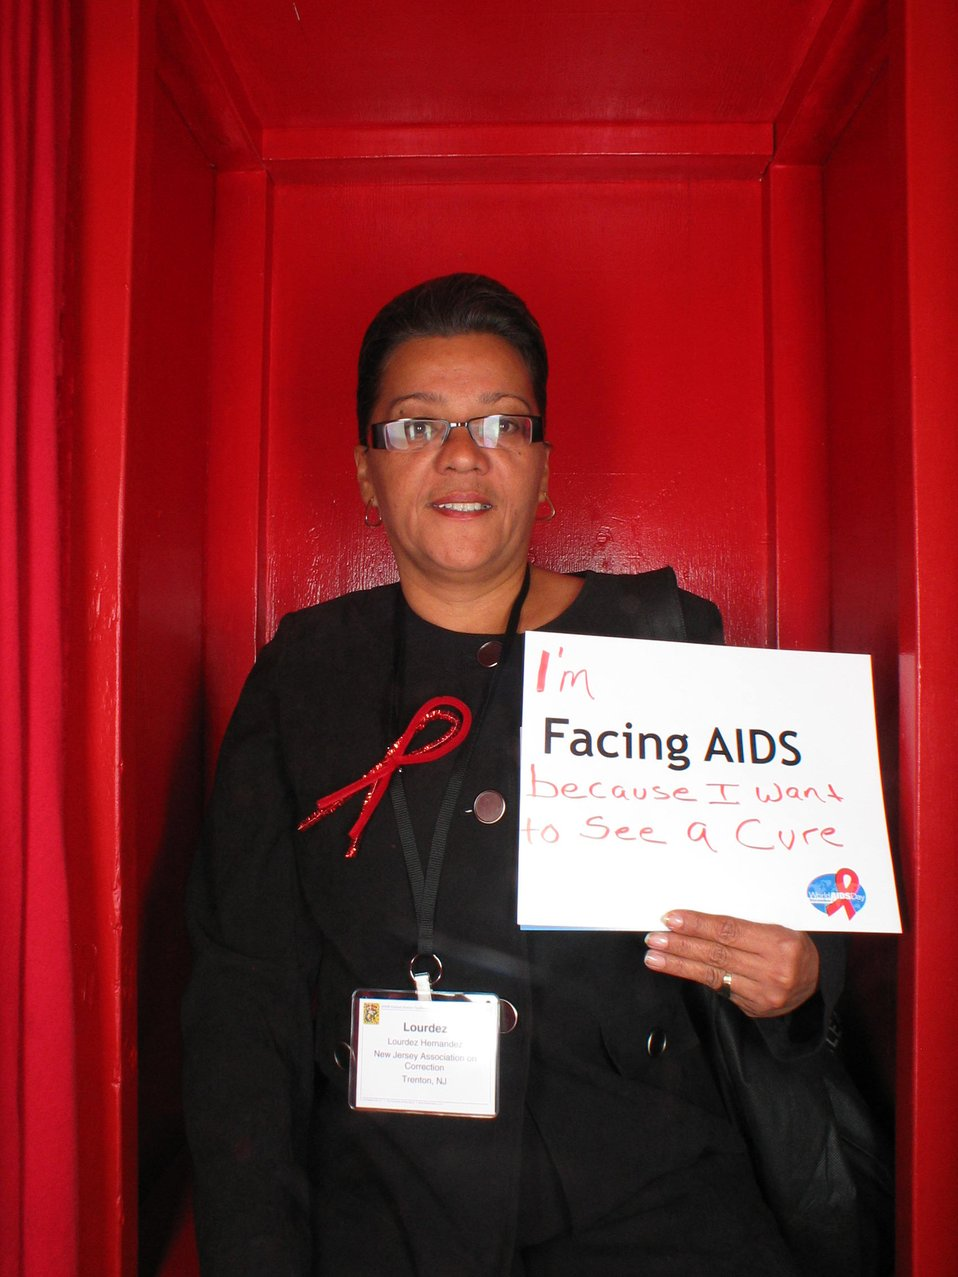 I am Facing AIDS because I want to see a cure.